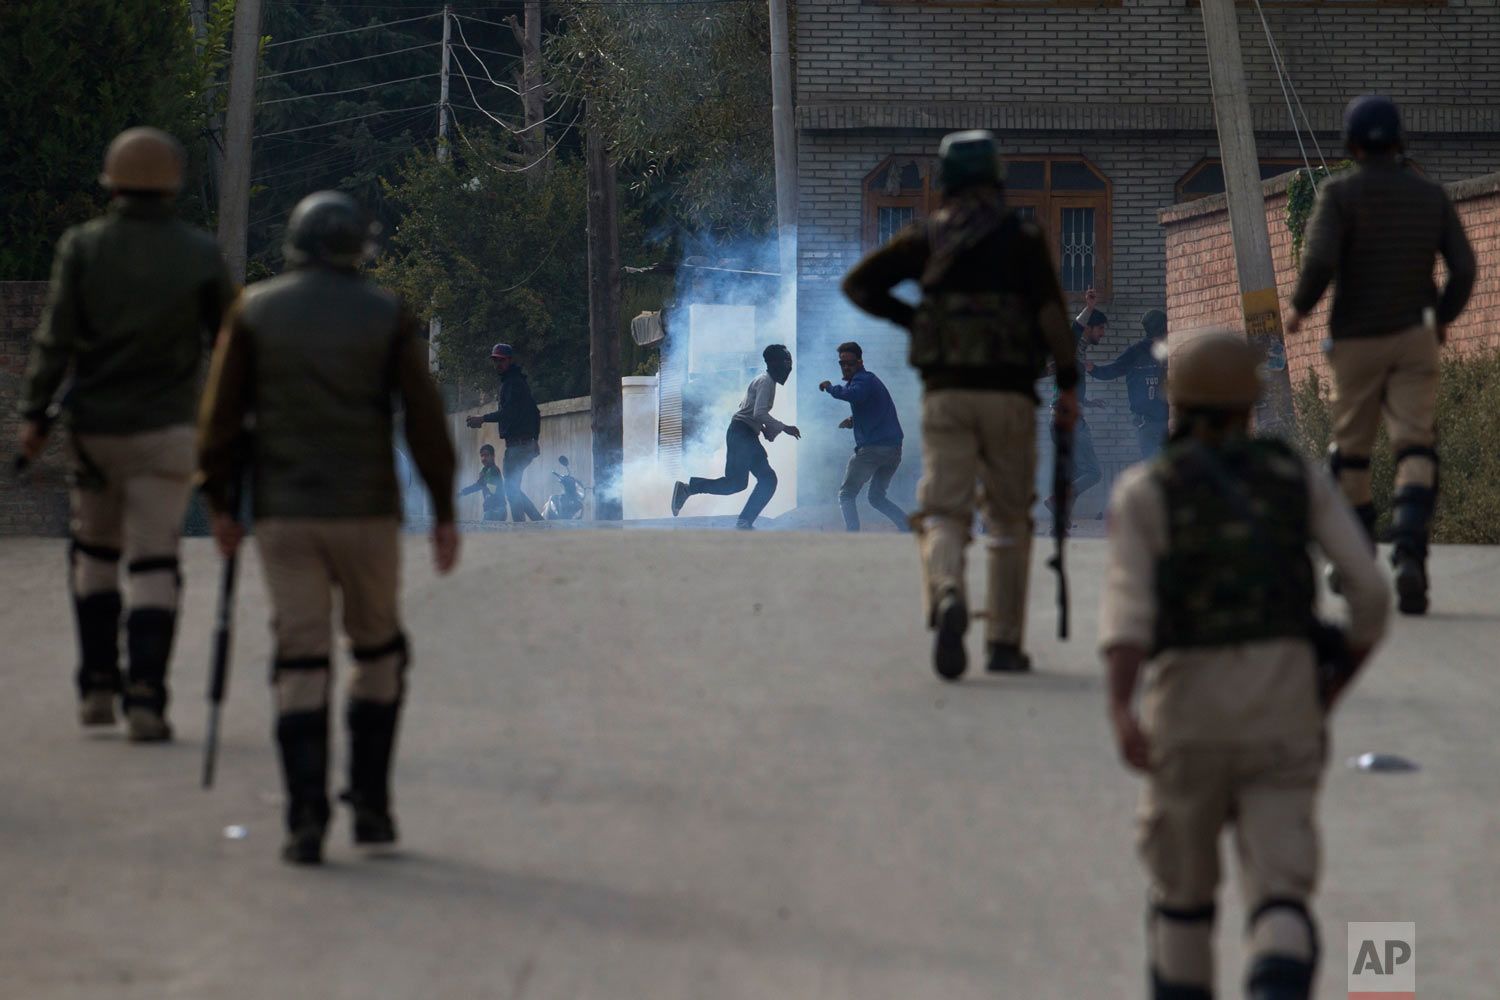 Kashmiri protesters run for cover from a tear gas shell fired at them by Indian security forces in Srinagar, India, Friday, Oct. 19, 2018. Government forces fired tear gas and pellets on Kashmiris who gathered after Friday afternoon prayers on a protest call given by separatists against the killing two rebels and a civilian during a gun battle in Srinagar on Wednesday. (AP Photo/Dar Yasin)